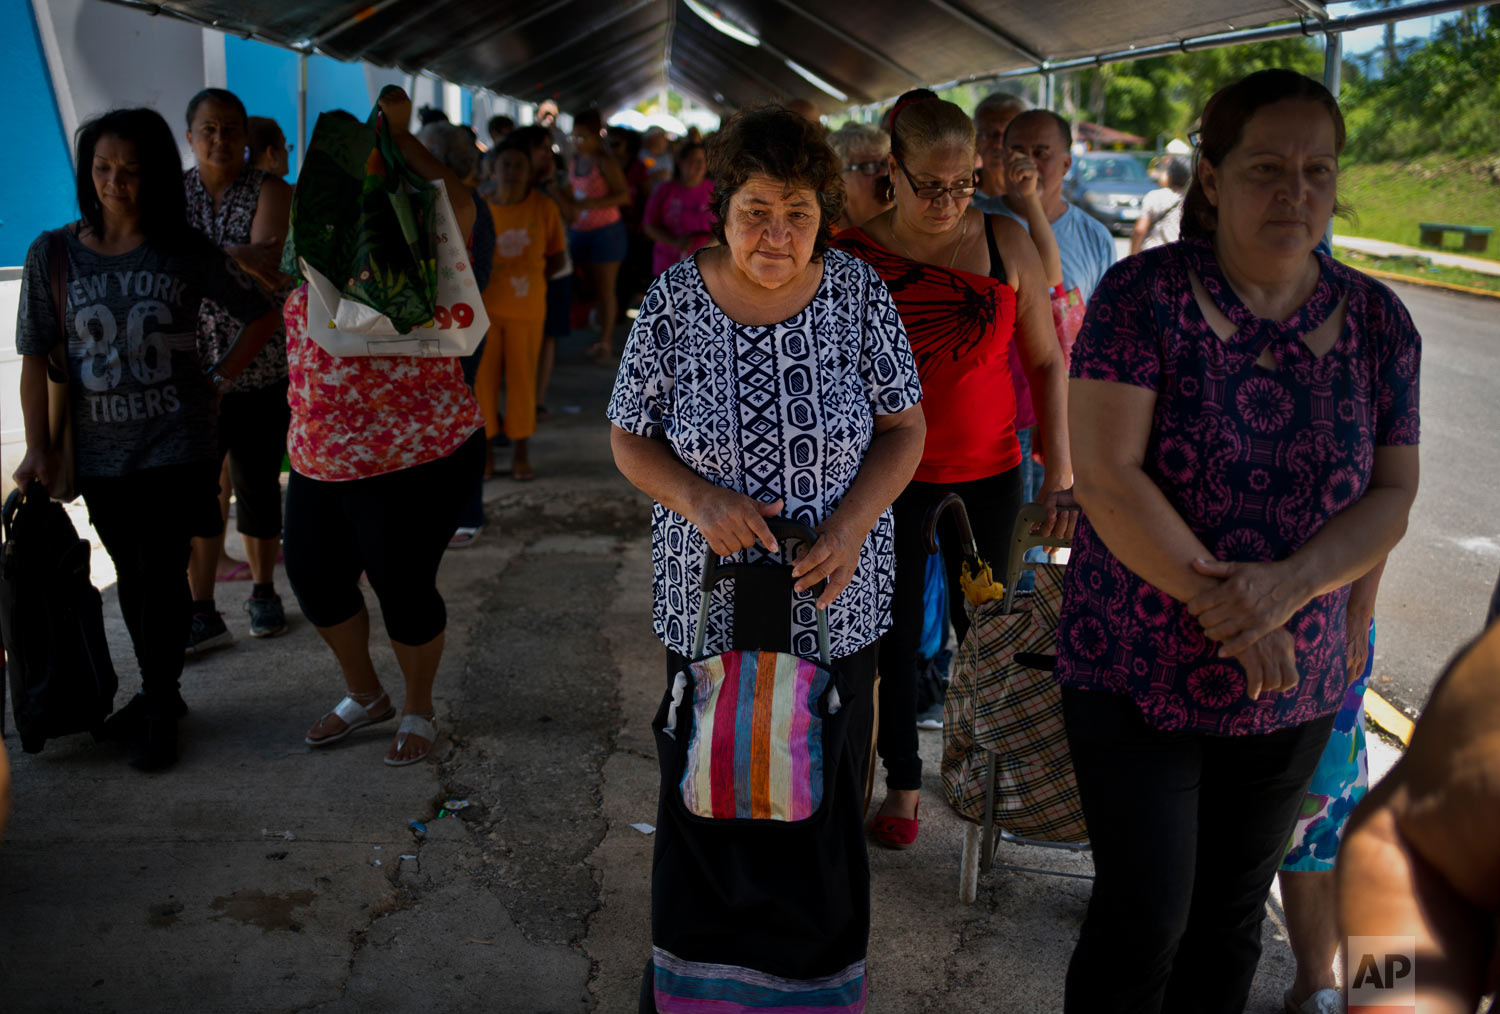 In this Sept. 7, 2018 photo, Elia de Jesus Acebedo waits in a line for donated food and other staples from the MARC Ministry, a non-profit charity in Manati, Puerto Rico. Acebedo, 67, said she and her sister rented a home that was destroyed by Hurricane Maria one year go, leaving them with nothing. (AP Photo/Ramon Espinosa)